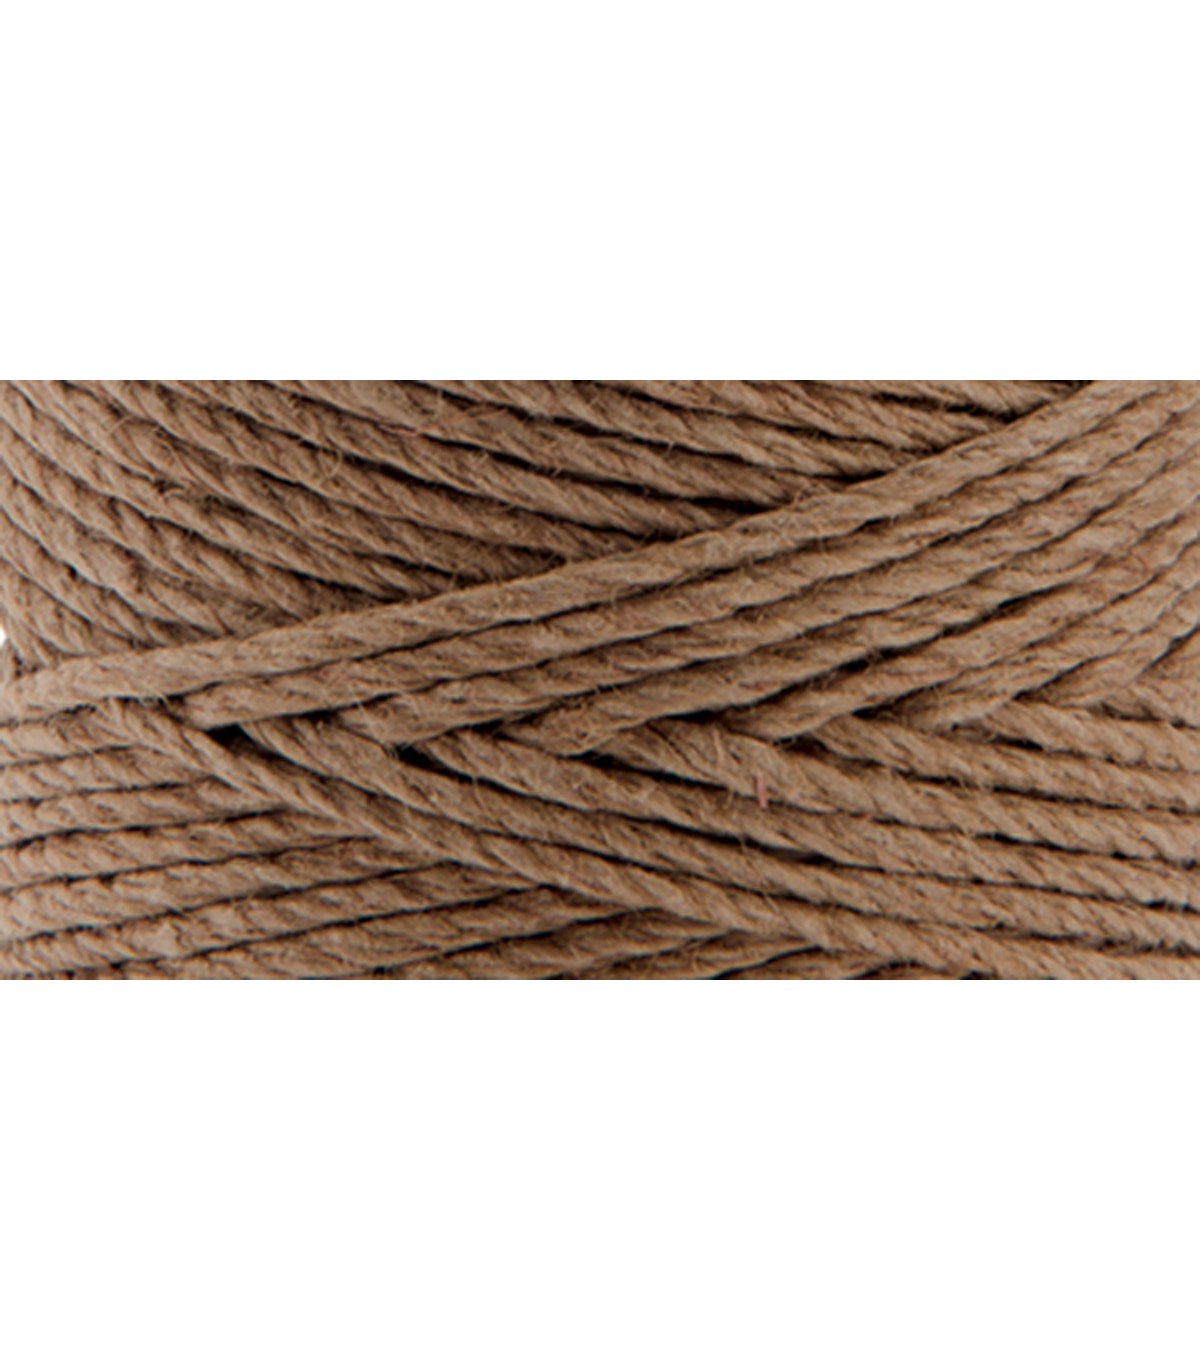 Hemptique #20 205\u0027 Hemp Cord Spool-Light Brown